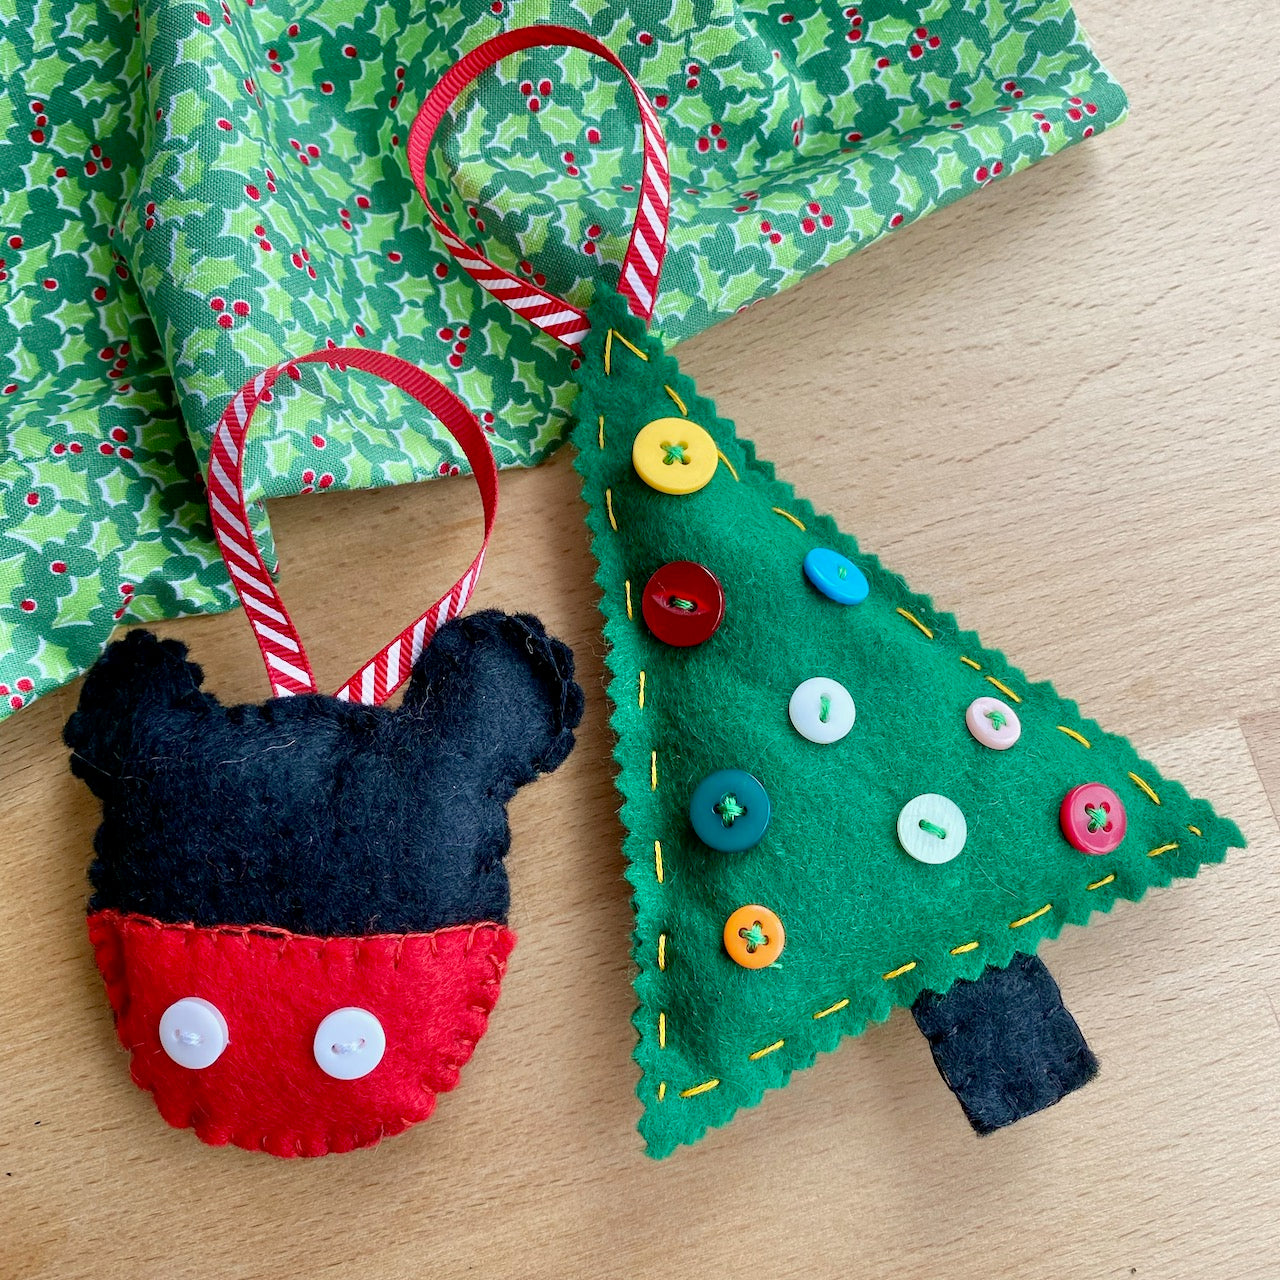 Easy to Make: Felted Christmas Tree Decorations